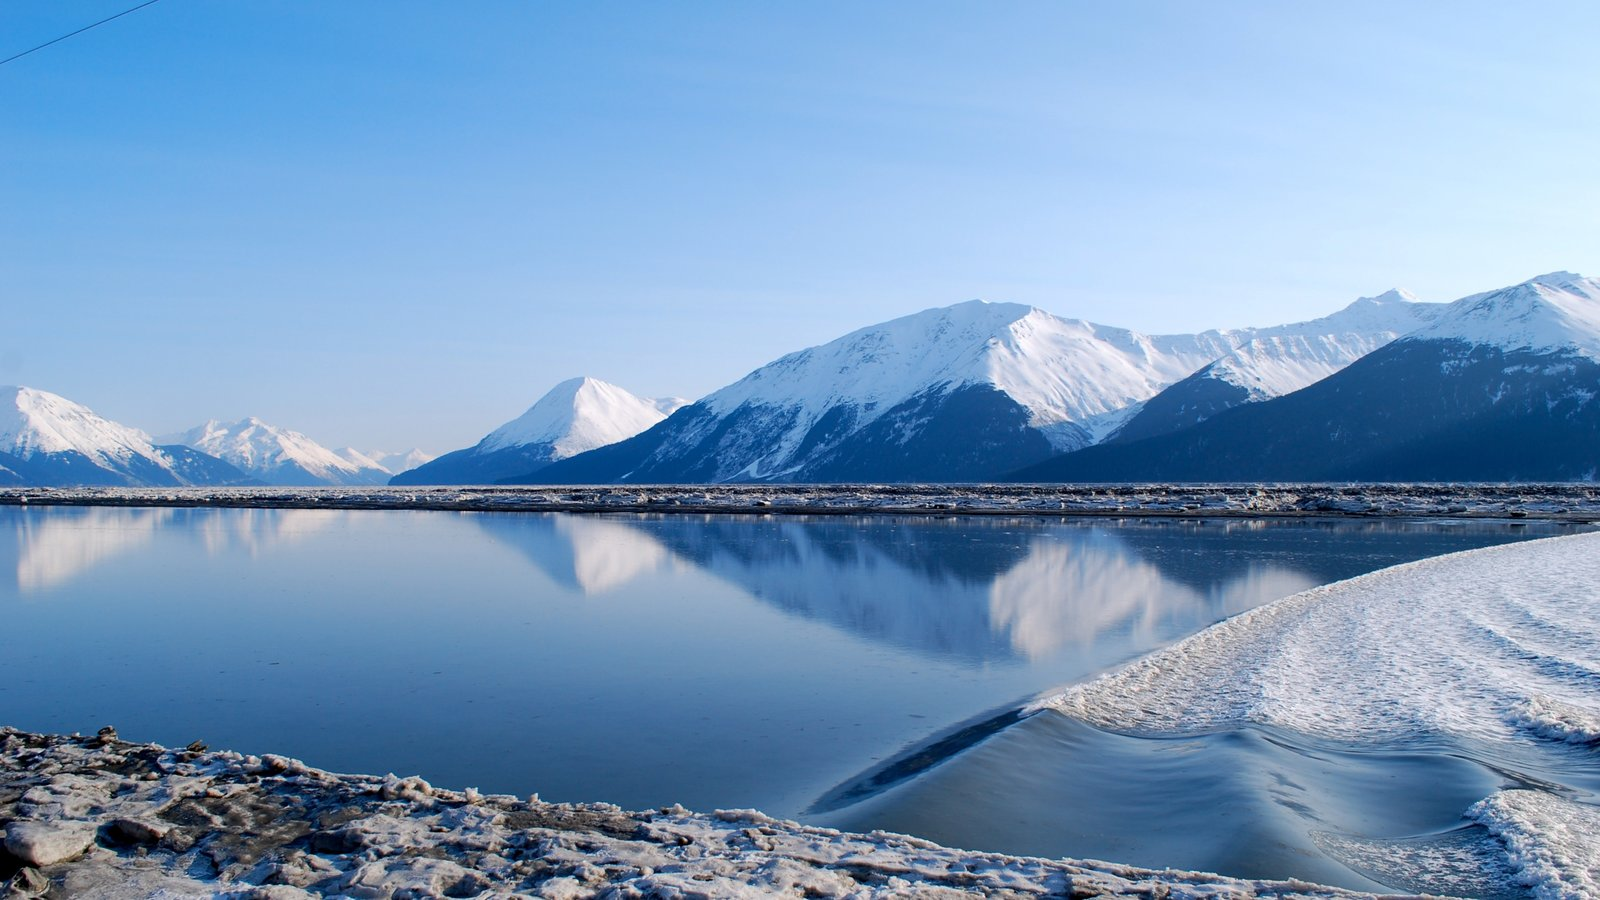 Anchorage featuring mountains, landscape views and general coastal views